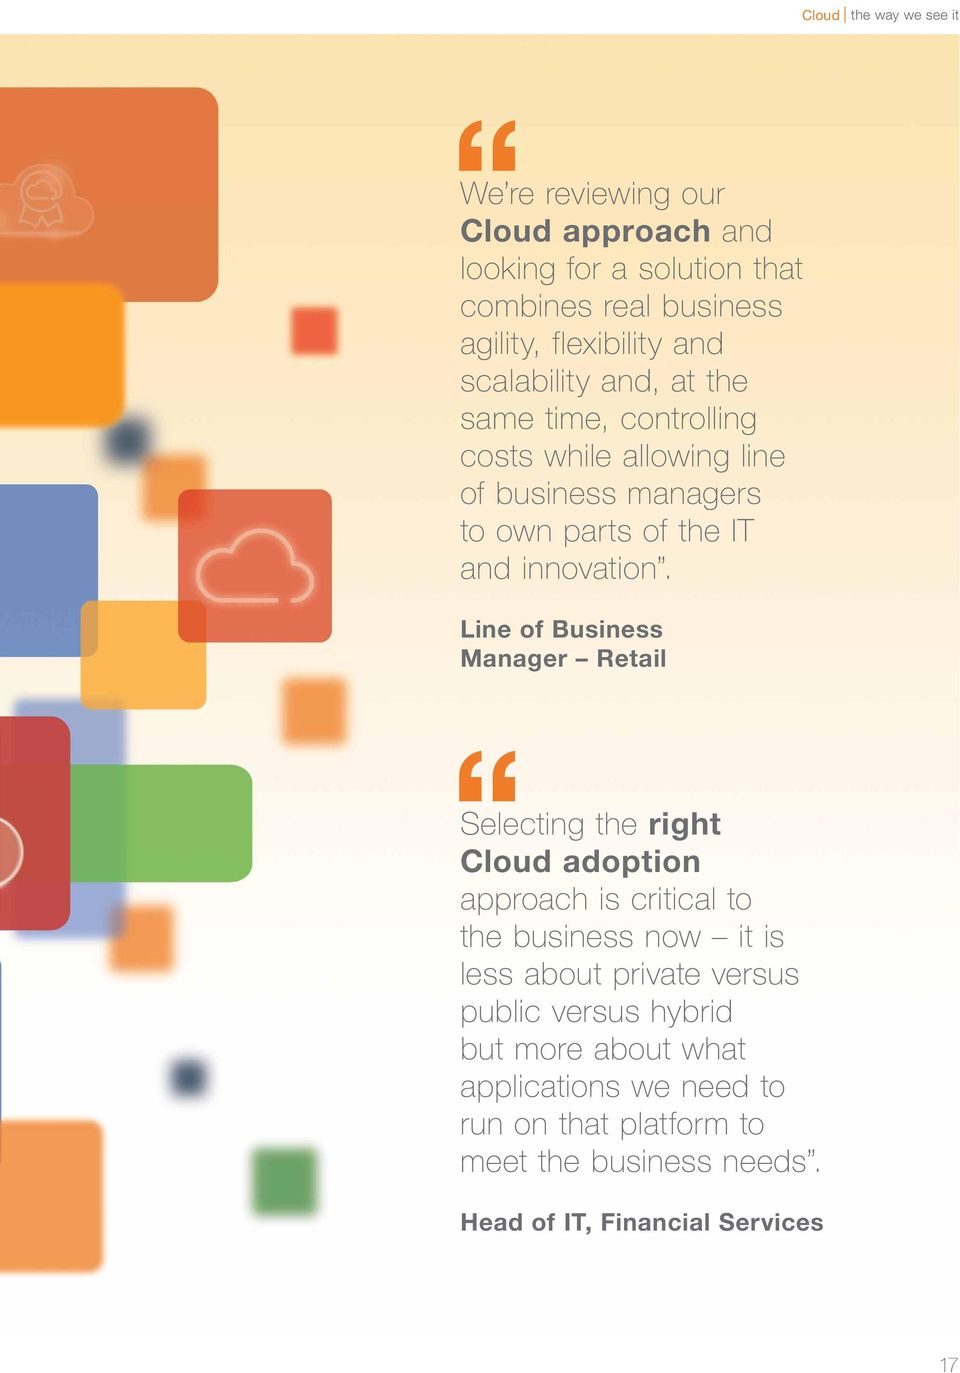 Line of Business Manager Retail Selecting the right Cloud adoption approach is critical to the business now it is less about private